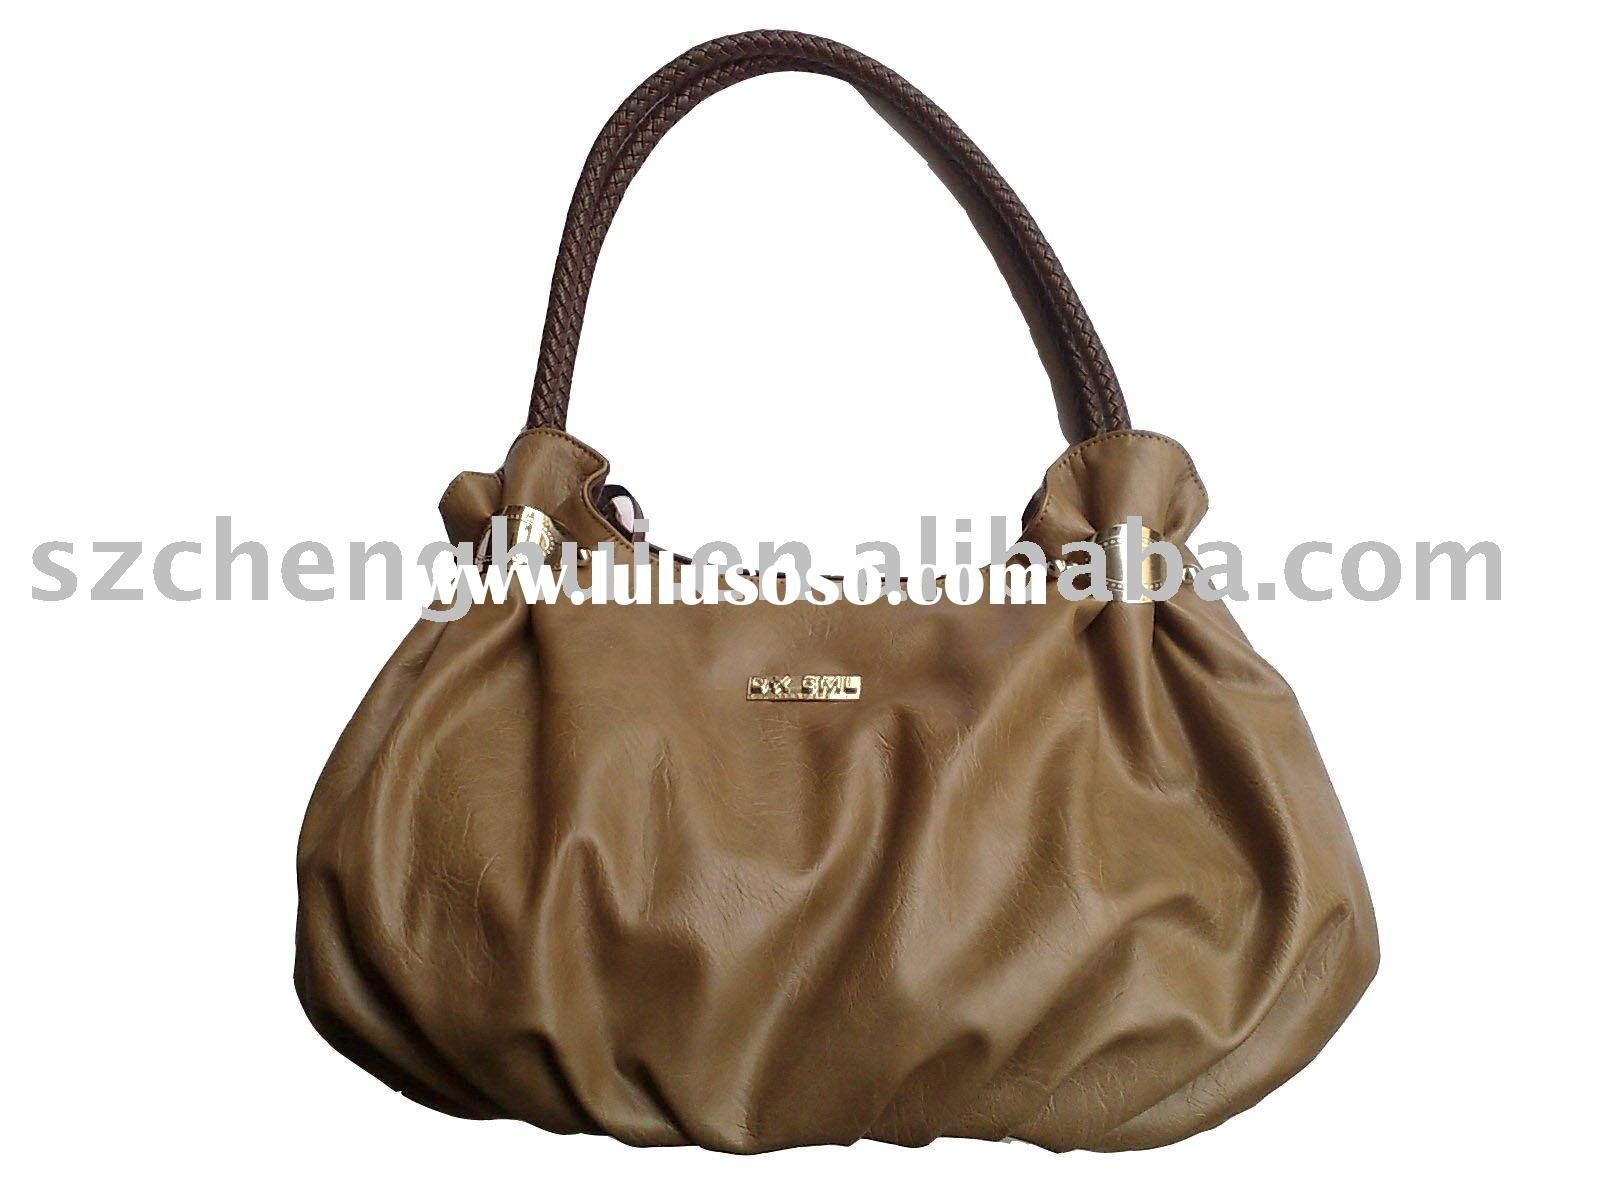 2011 PU handbag-best seller